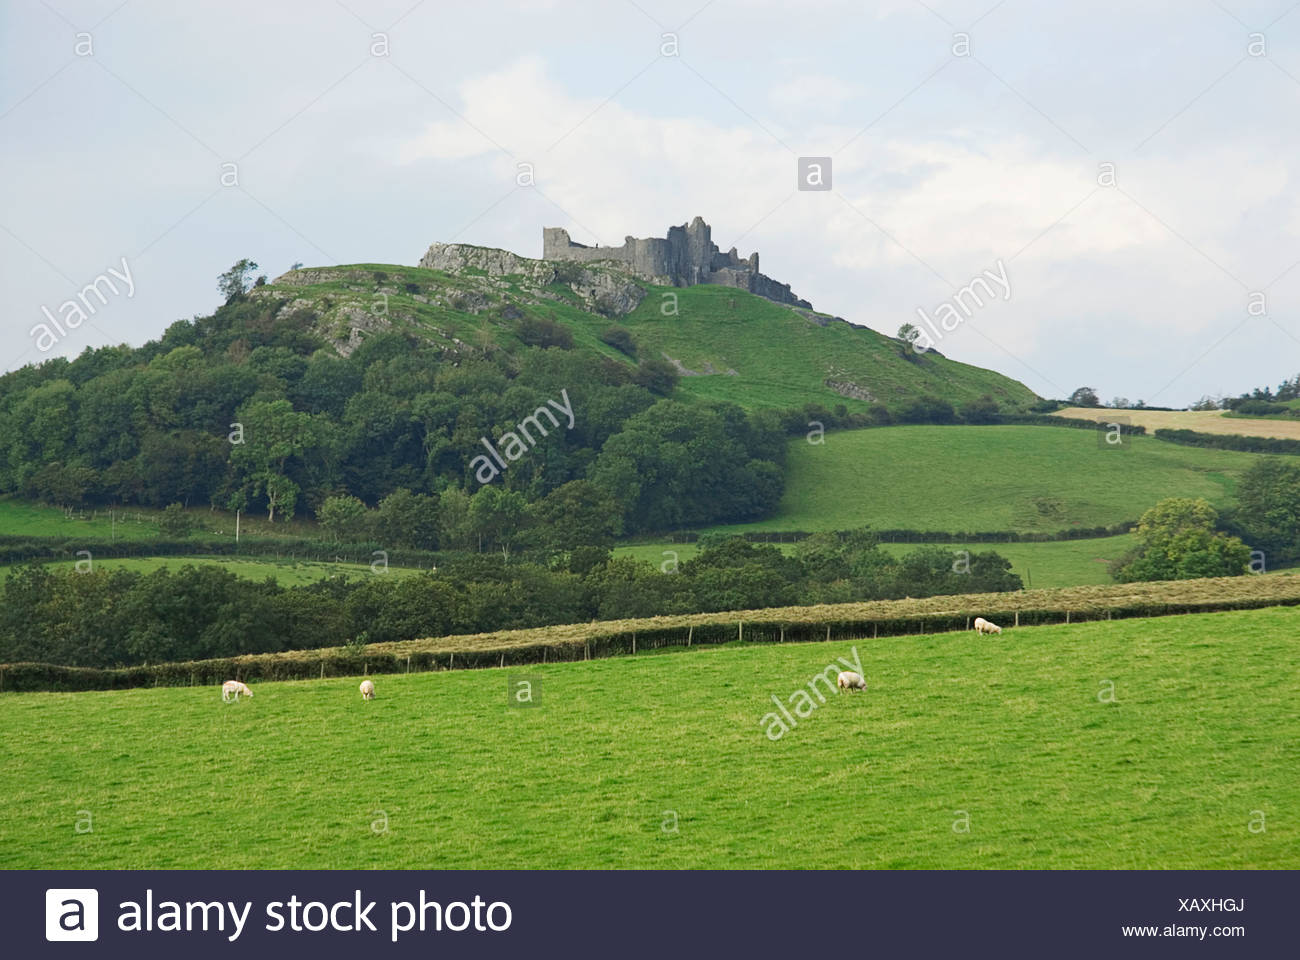 Great Britain, Wales, Carreg Cennen Castle, ruined castle on hill - Stock Image